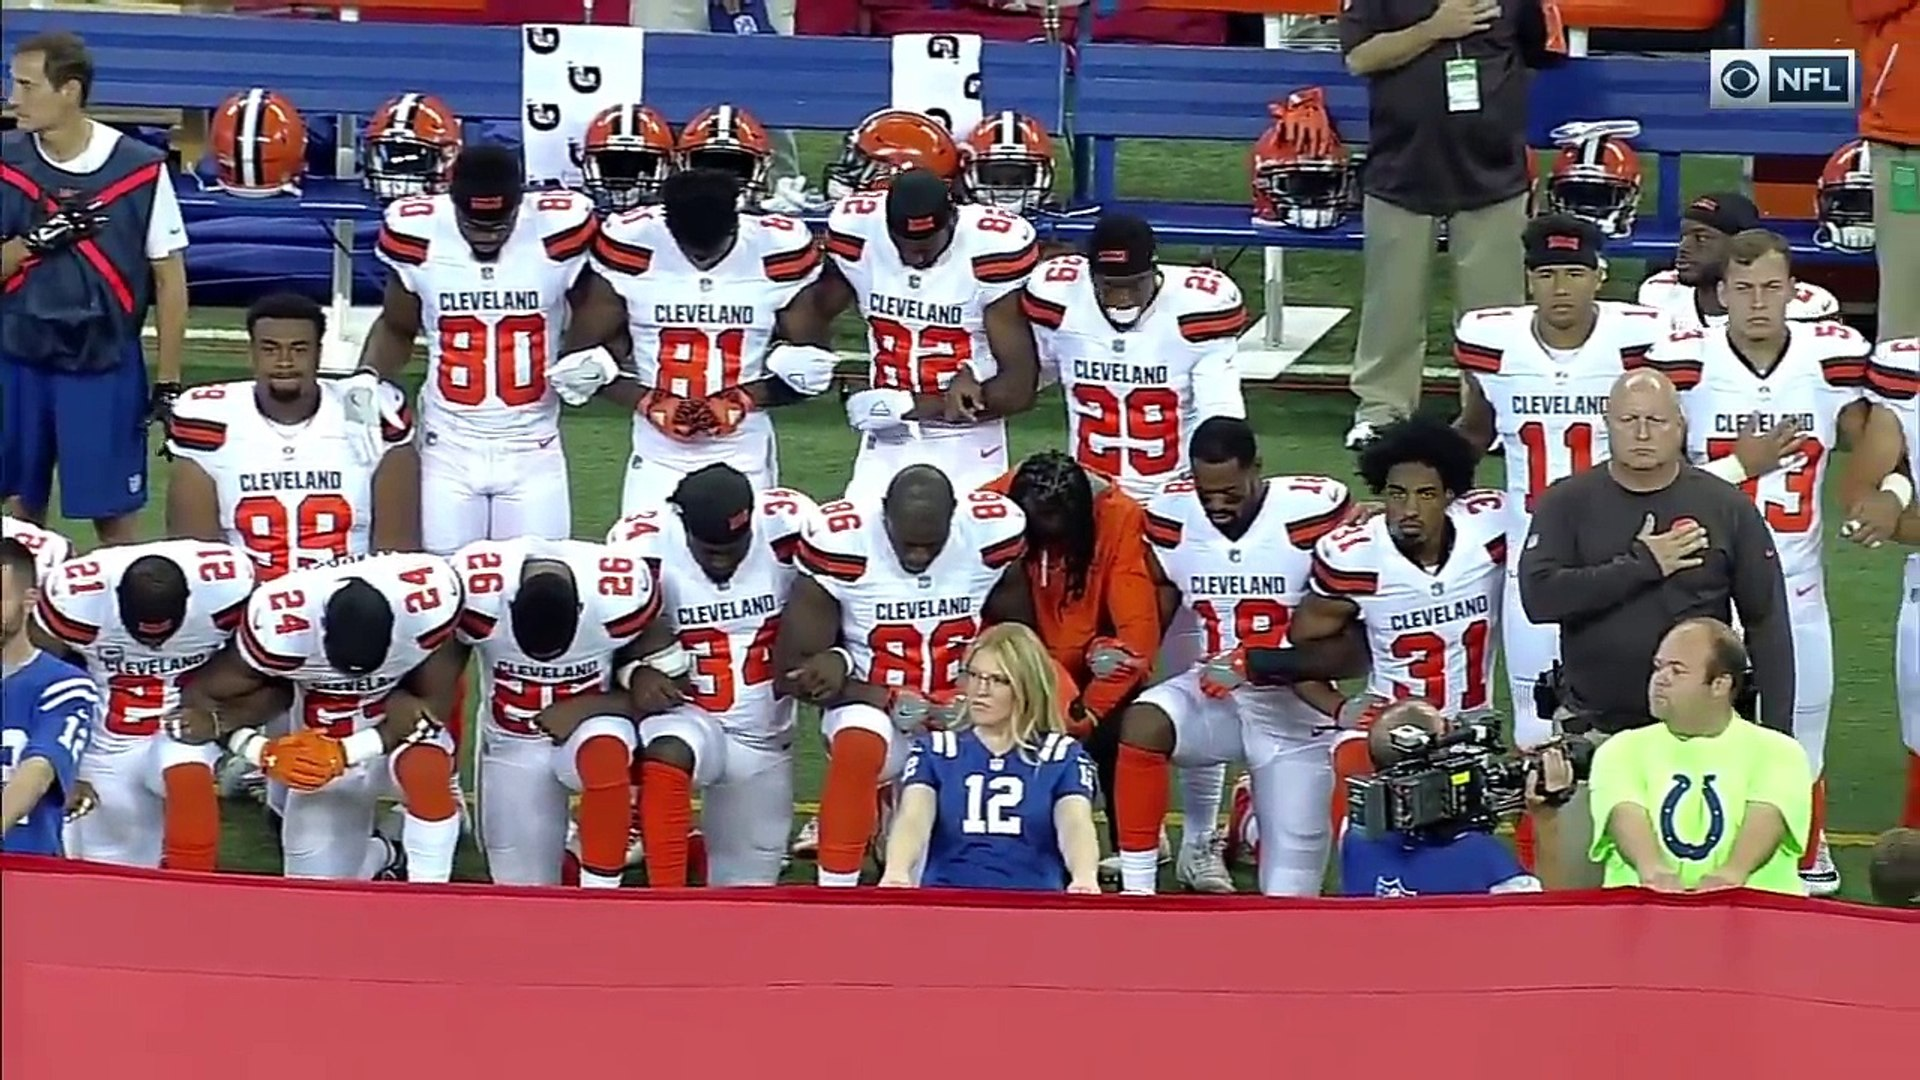 NFL Players, Owners, & Coaches Show Unity During National Anthem | Week 3